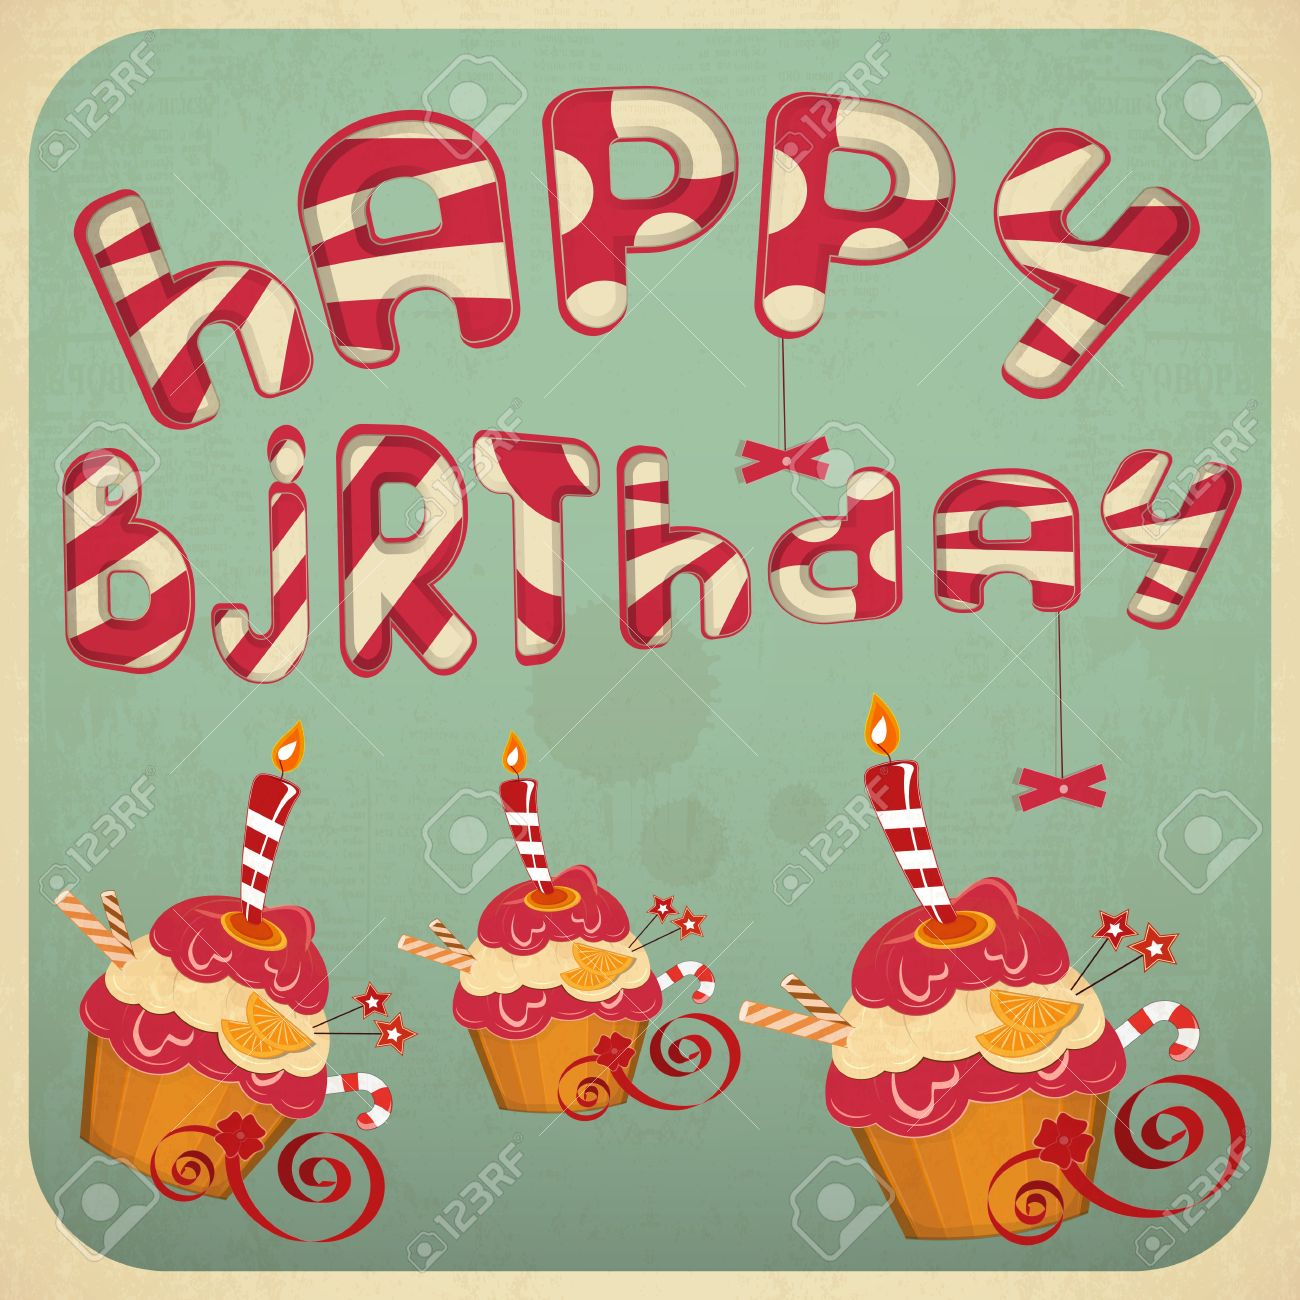 vintage birthday clipart ; 17858564-vintage-birthday-card-with-cakes-vector-illustration-